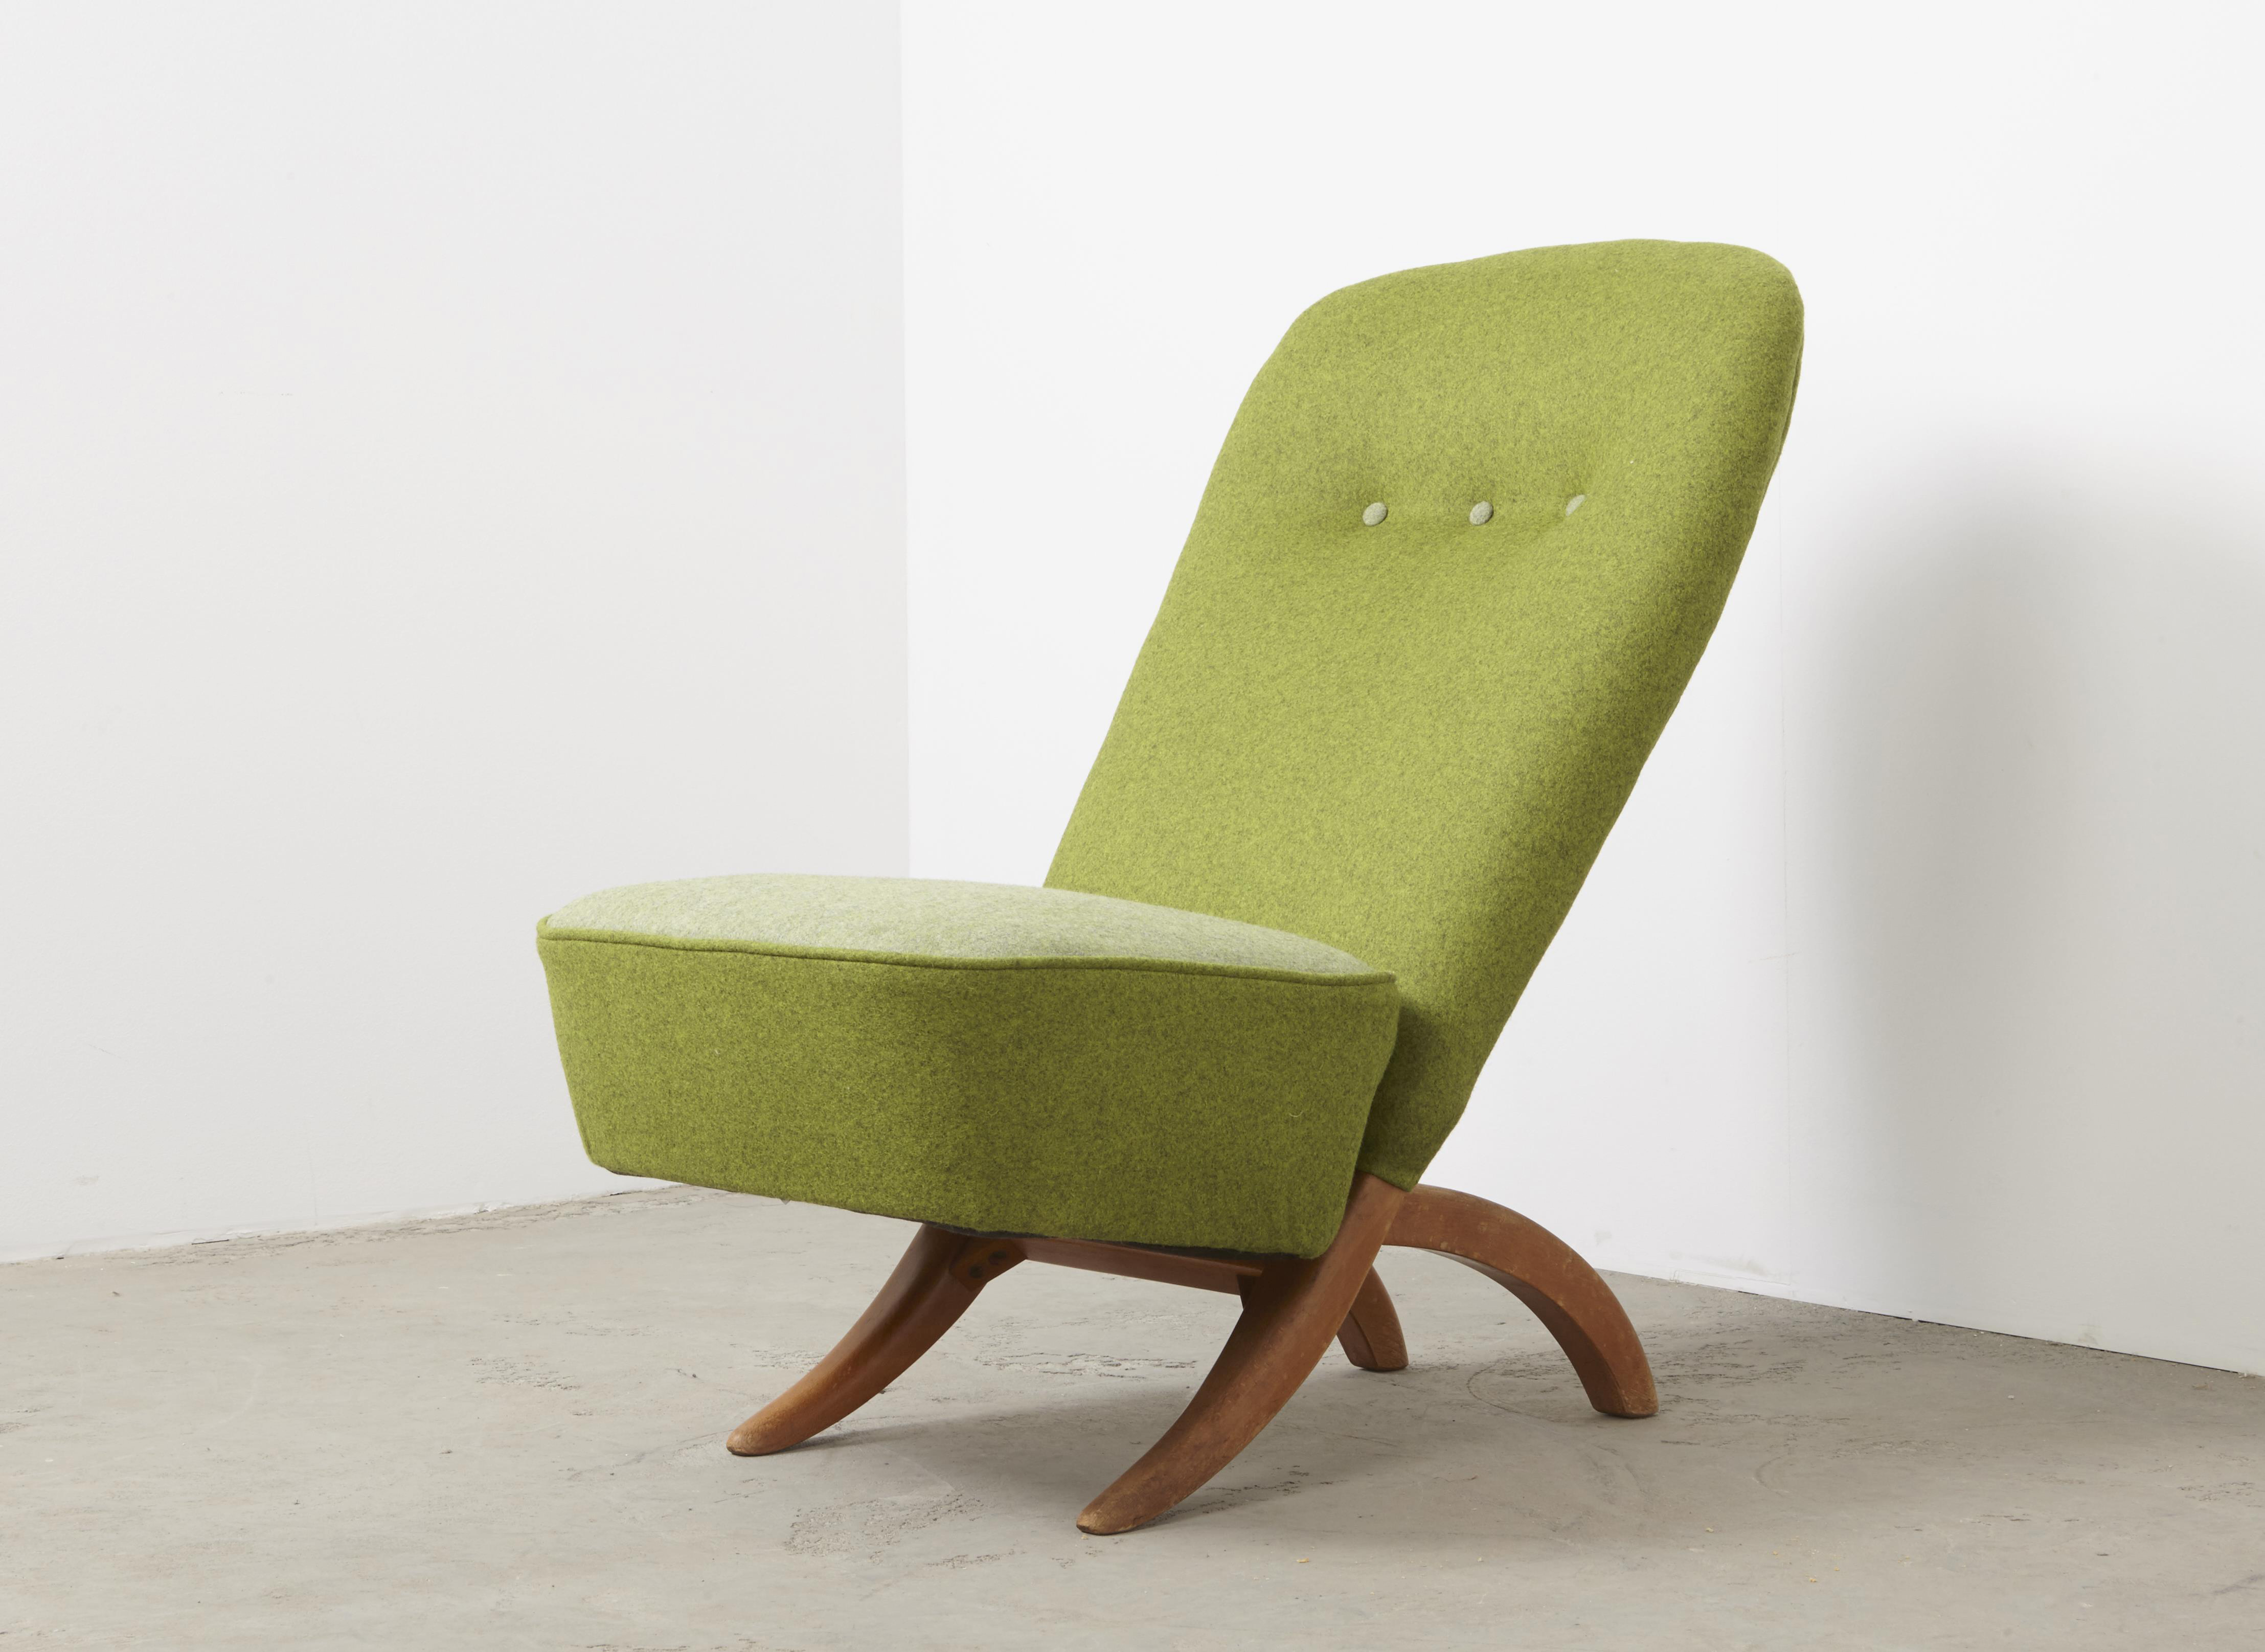 SOLD Theo Ruth Congo Lounge Chair Artifort 1952